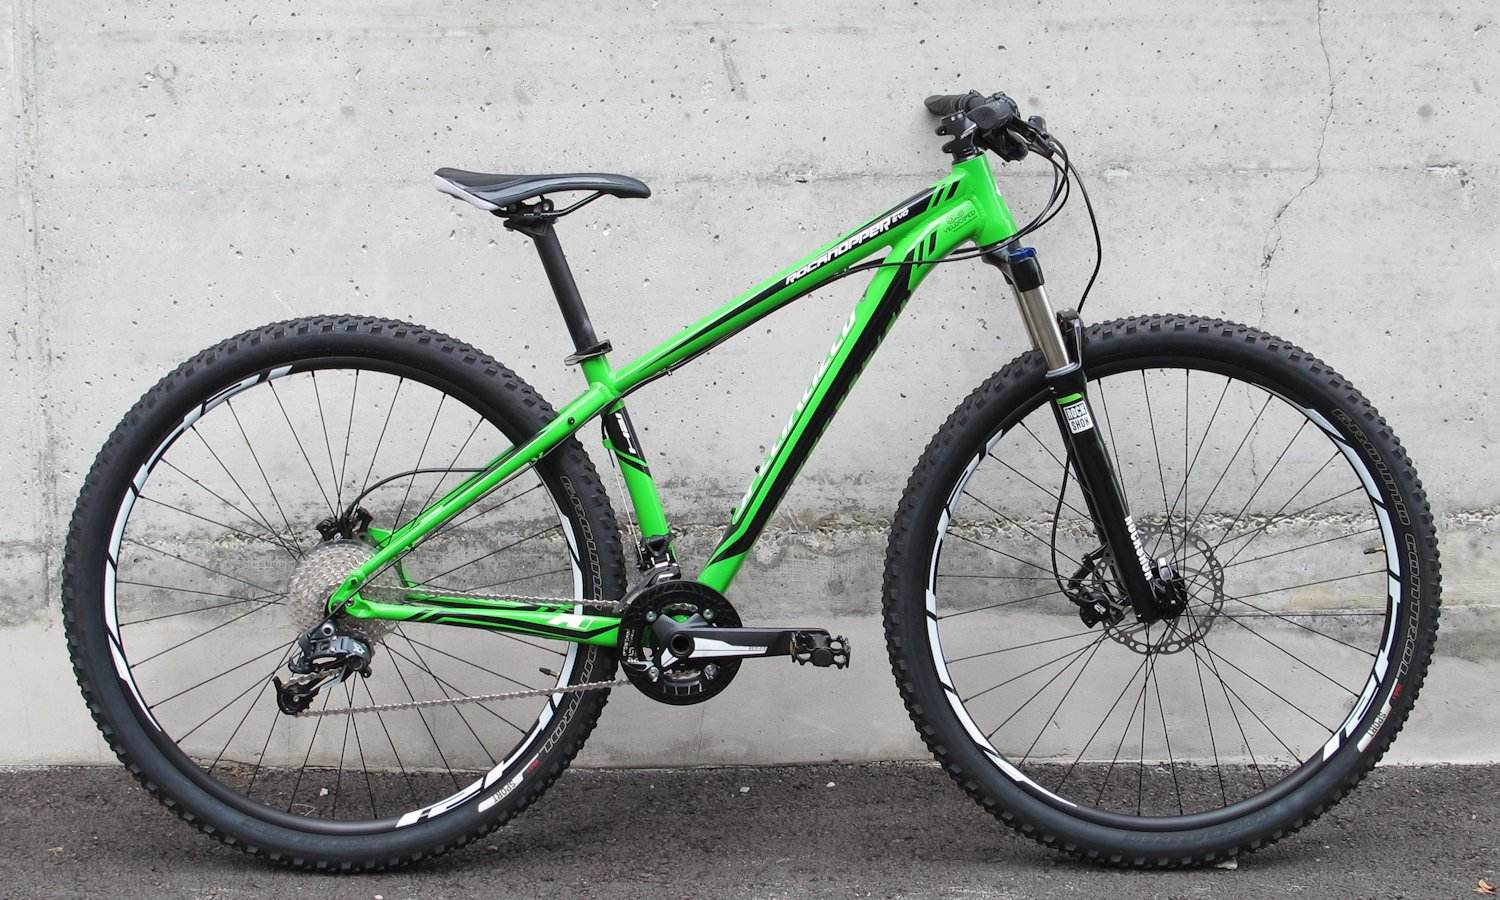 Specialized Rockhopper Pro EVO 650b - Camas Bike and Sport